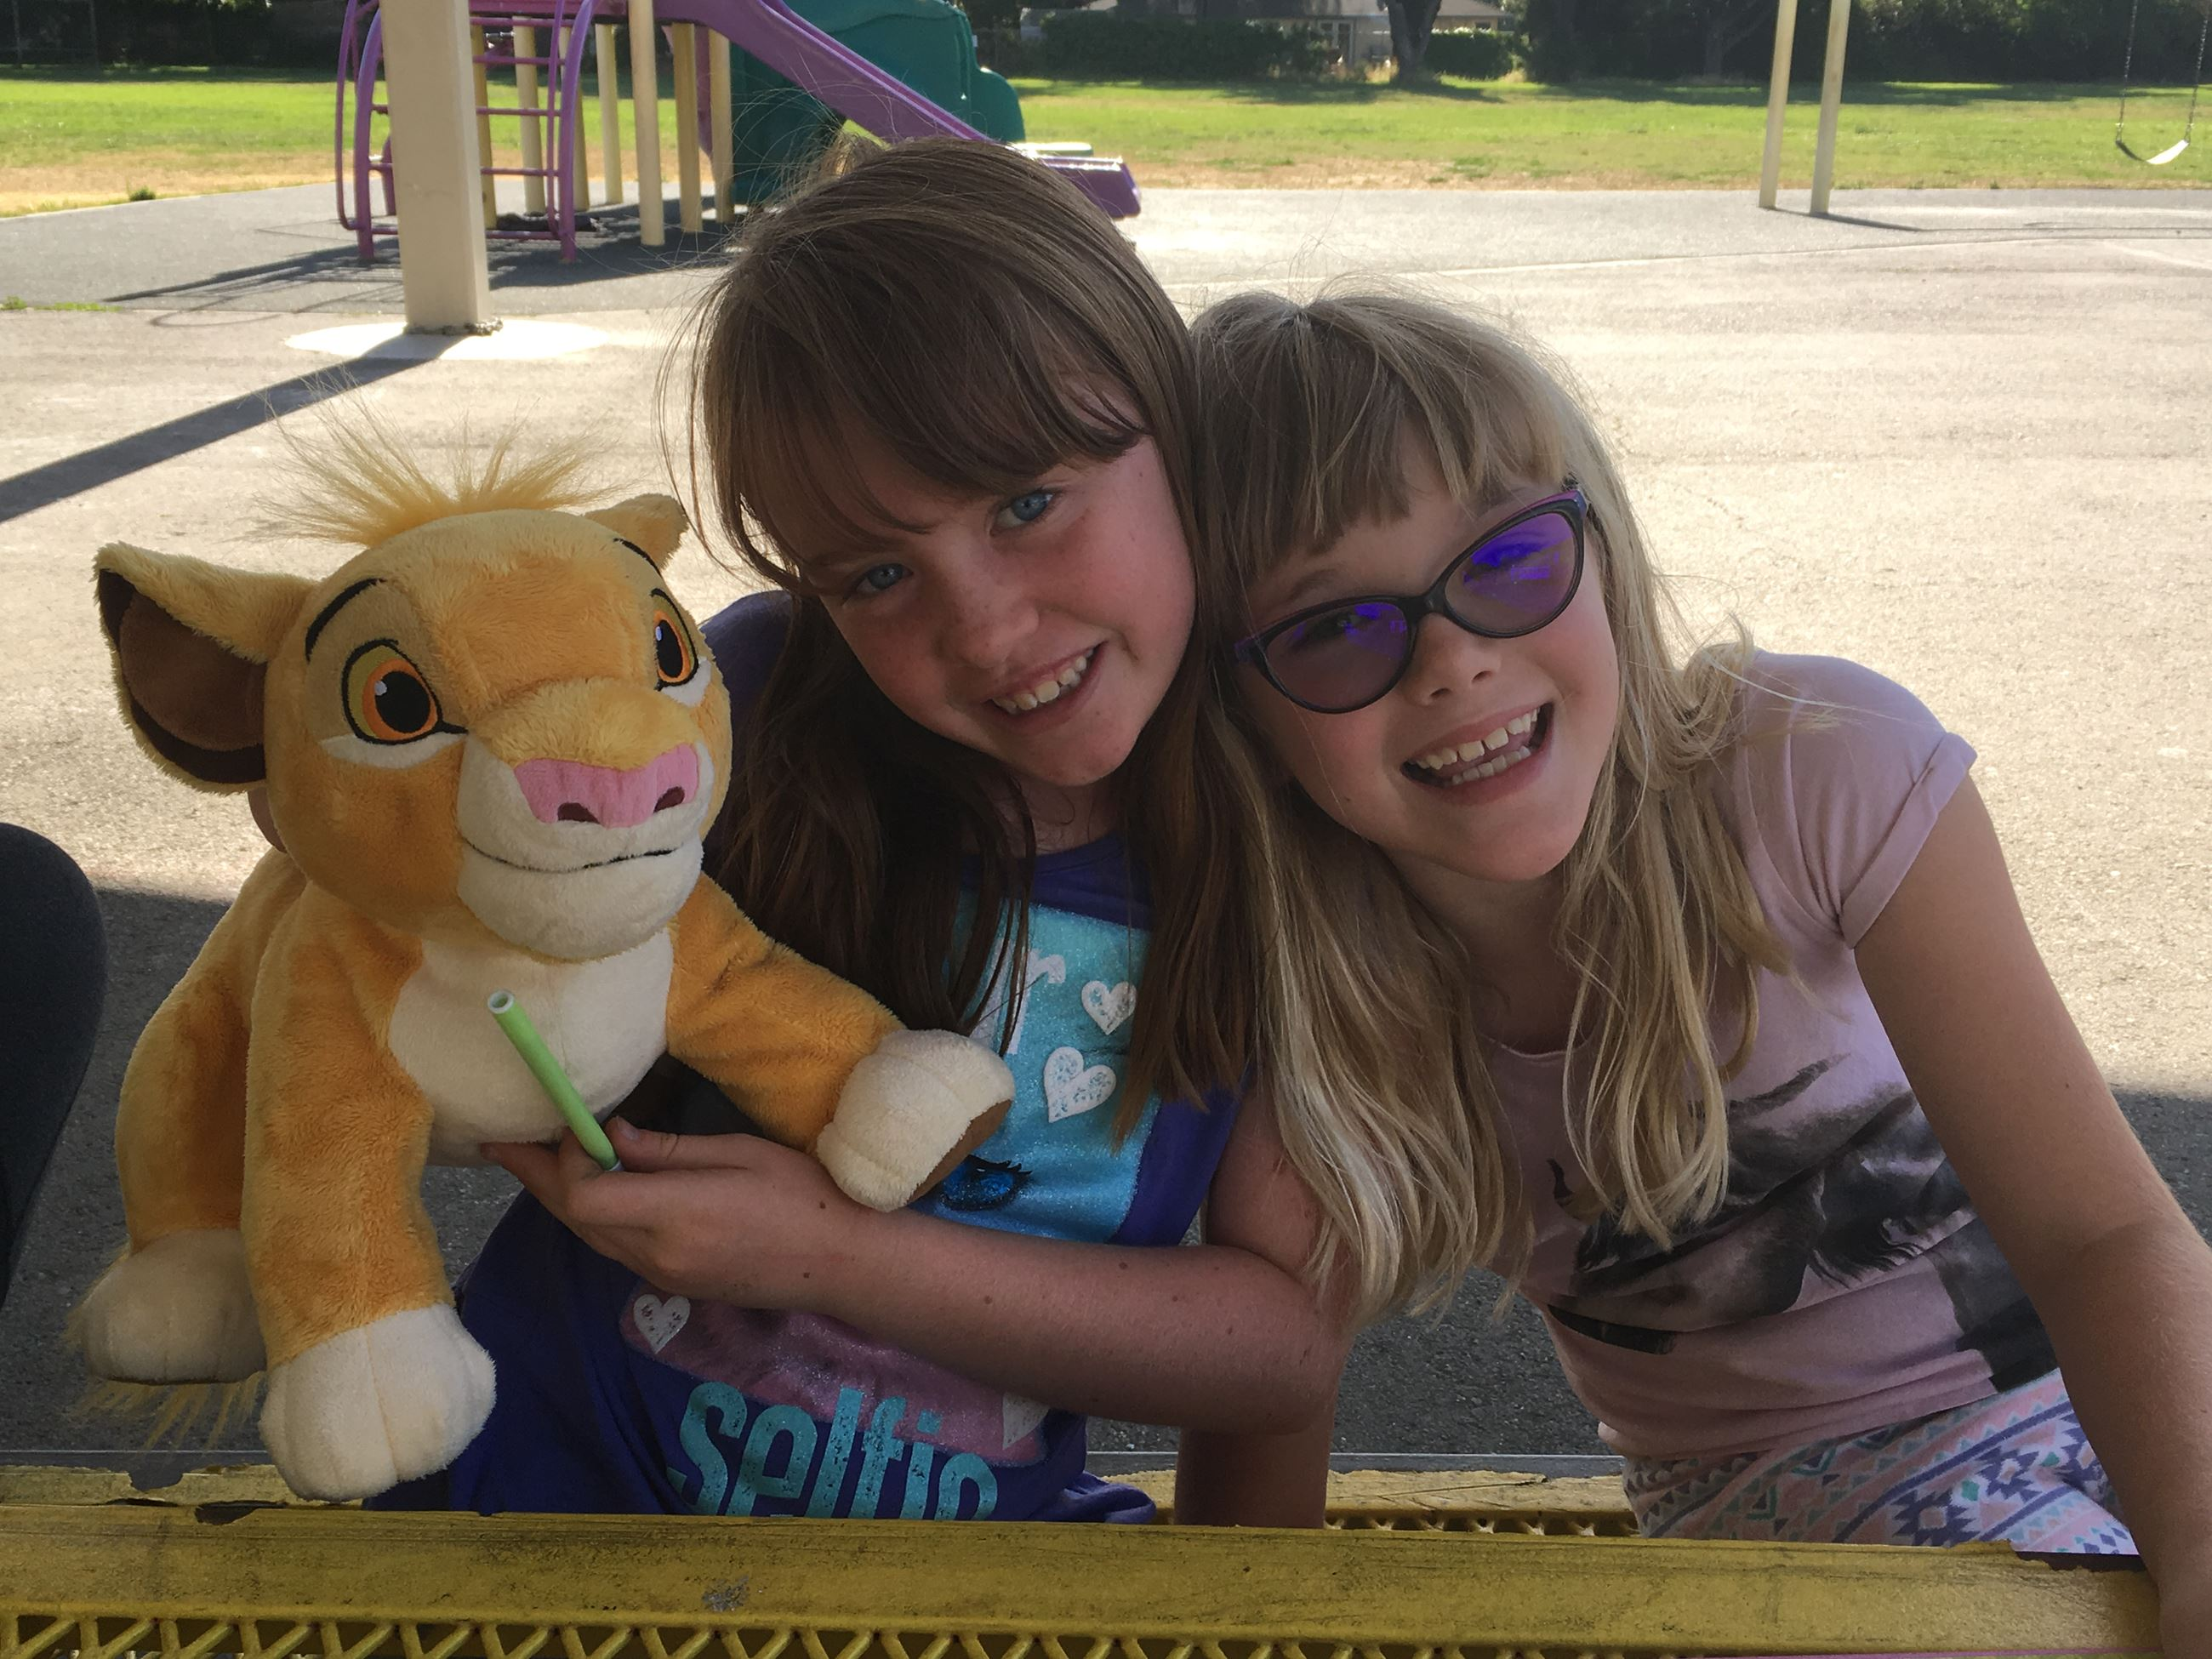 Two smiling girls with Simba Stuffed animal